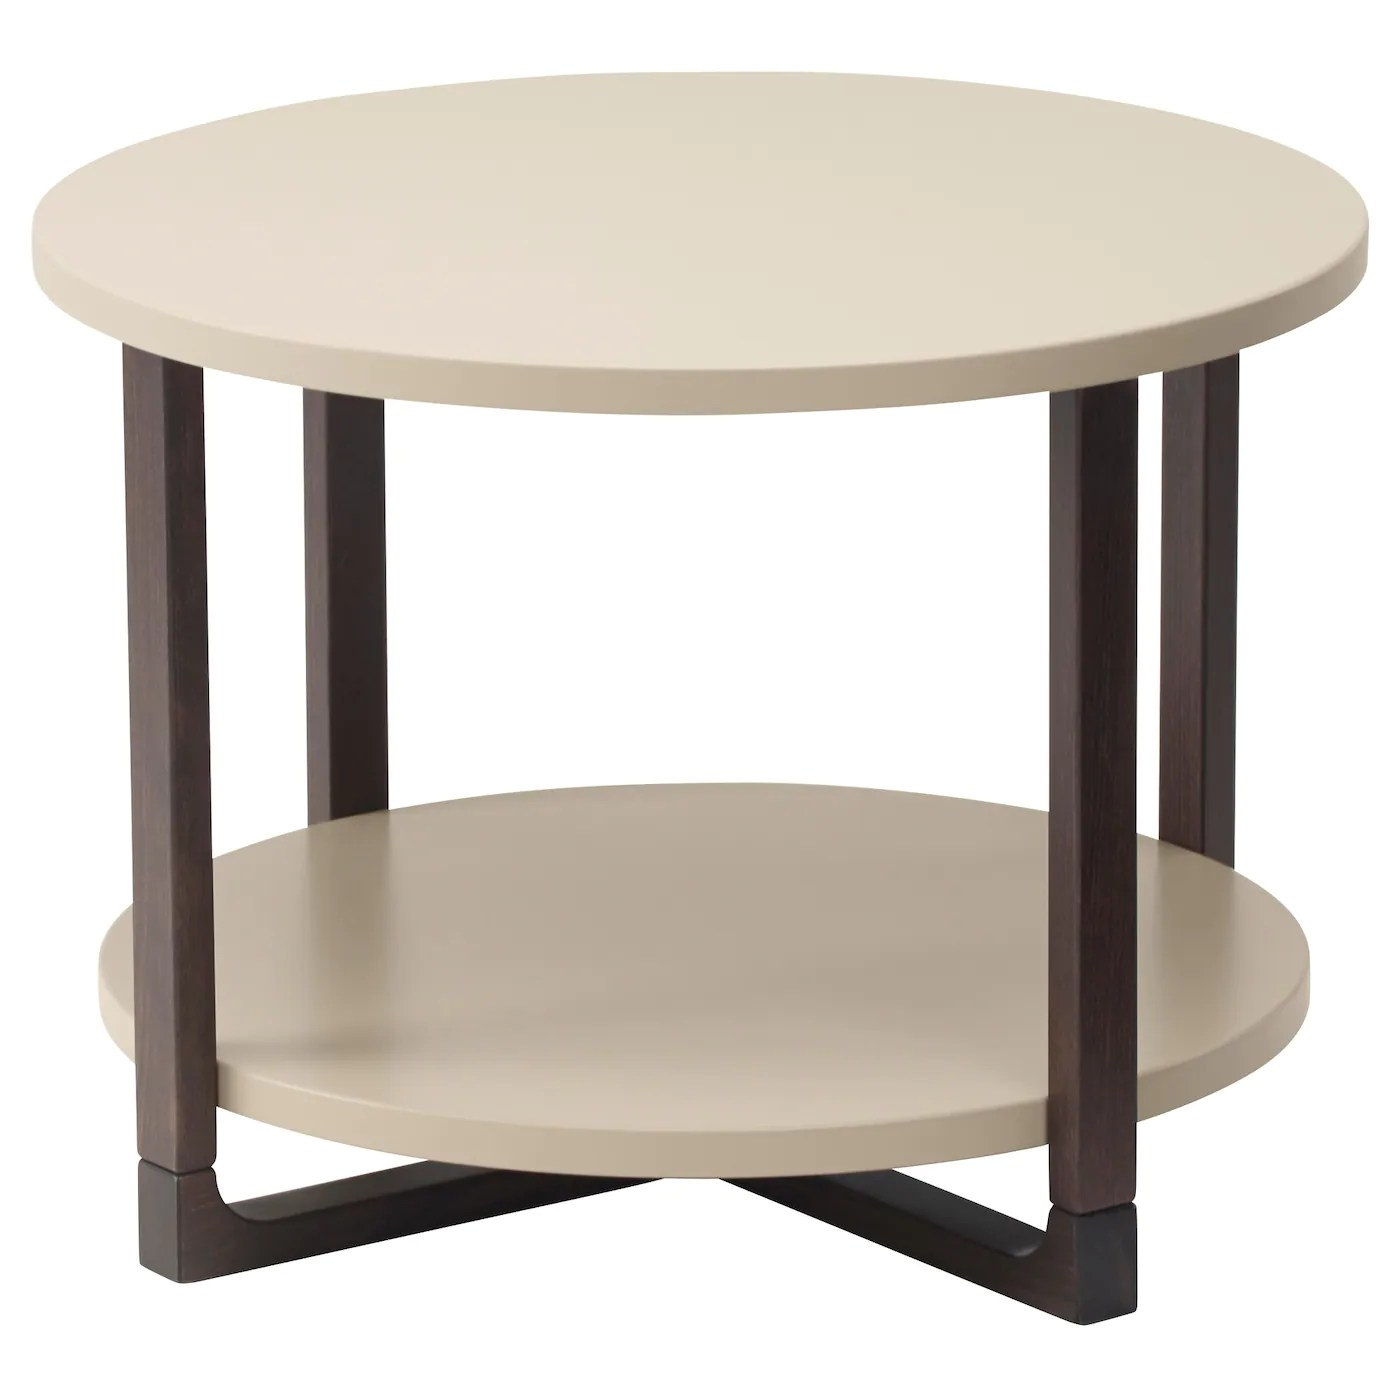 Coffee Table Images Rissna Side Table Beige 60 Cm Ikea